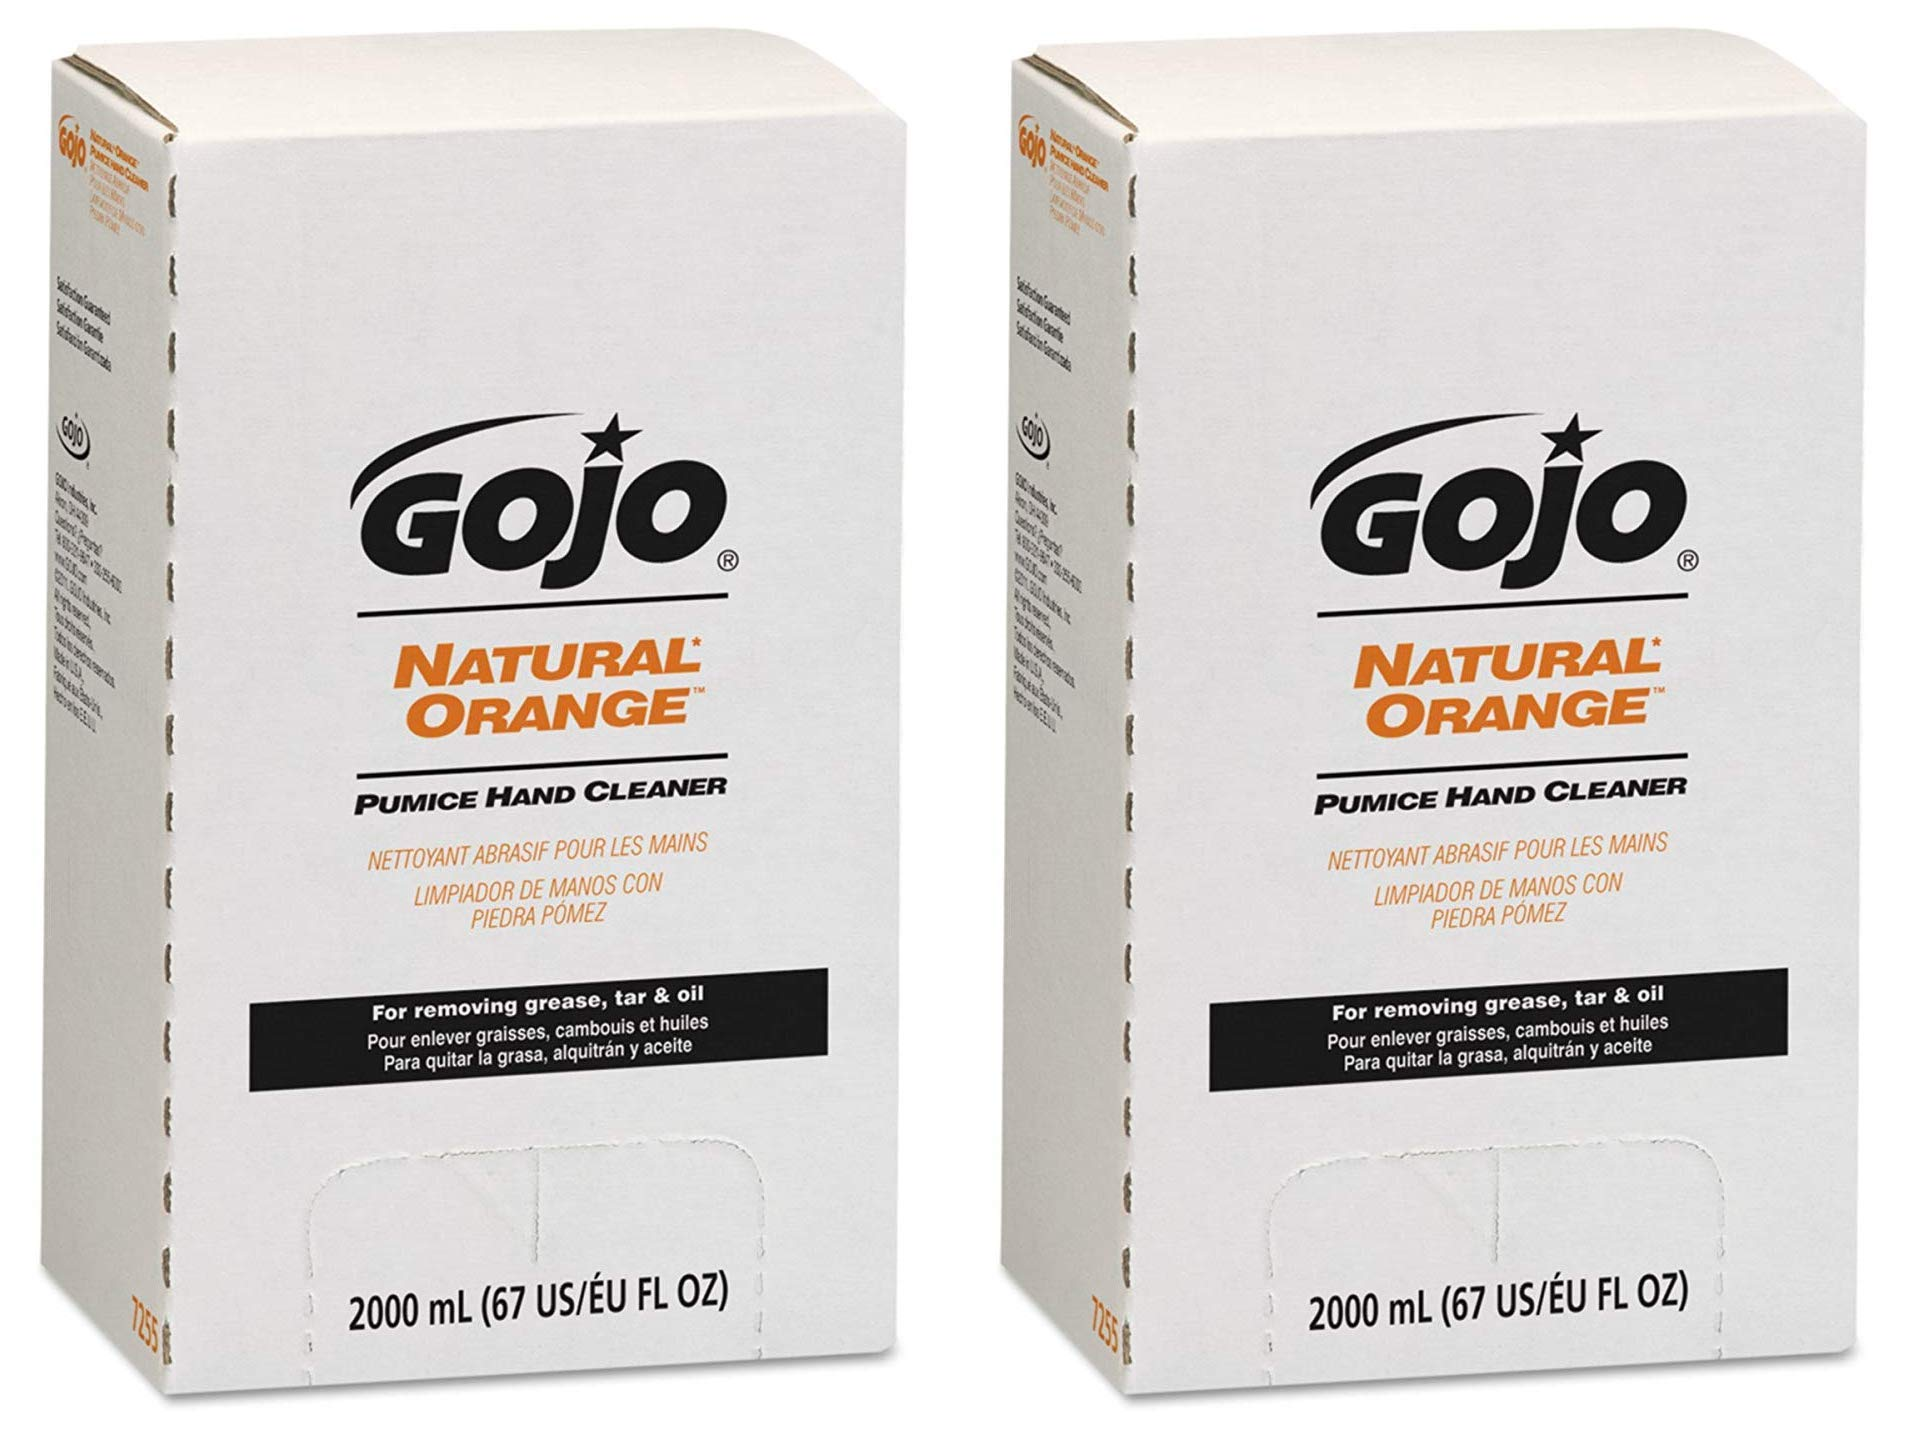 GOJO NATURAL ORANGE Pumice Hand Cleaner, 2000 mL Quick Acting Lotion Hand Cleaner with Pumice Refill for GOJO PRO TDX Dispenser (Pack of 4) - 7255-04 (Twо Pаck) by Gojo